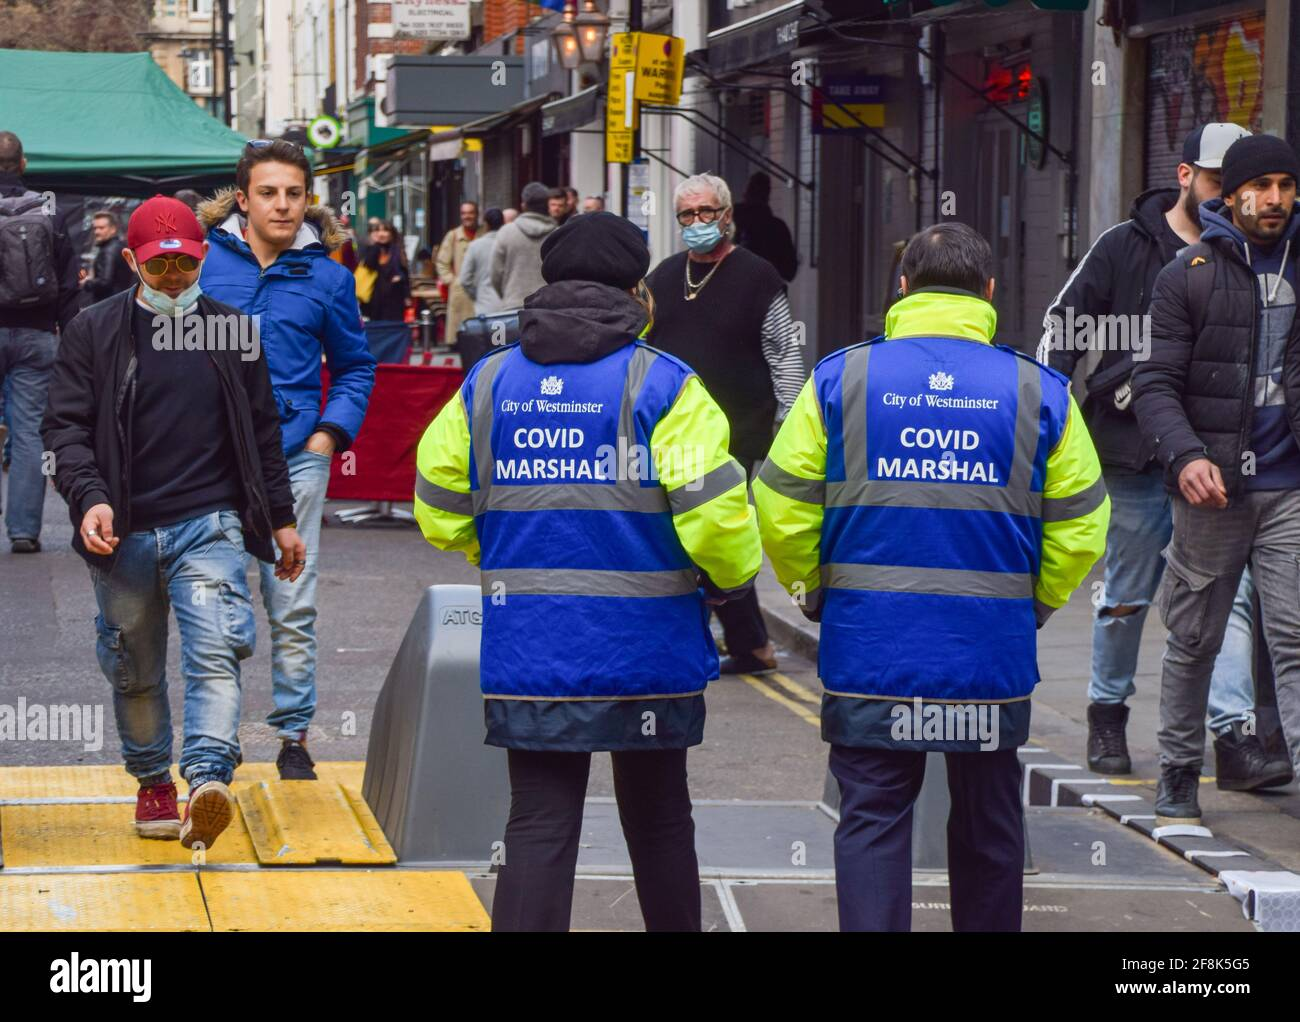 London, United Kingdom. 14th April 2021. Covid Marshals in Old Compton Street, Soho. Marshals have been deployed in the busy streets of Soho to support the public in observing the social distancing rules. Stock Photo